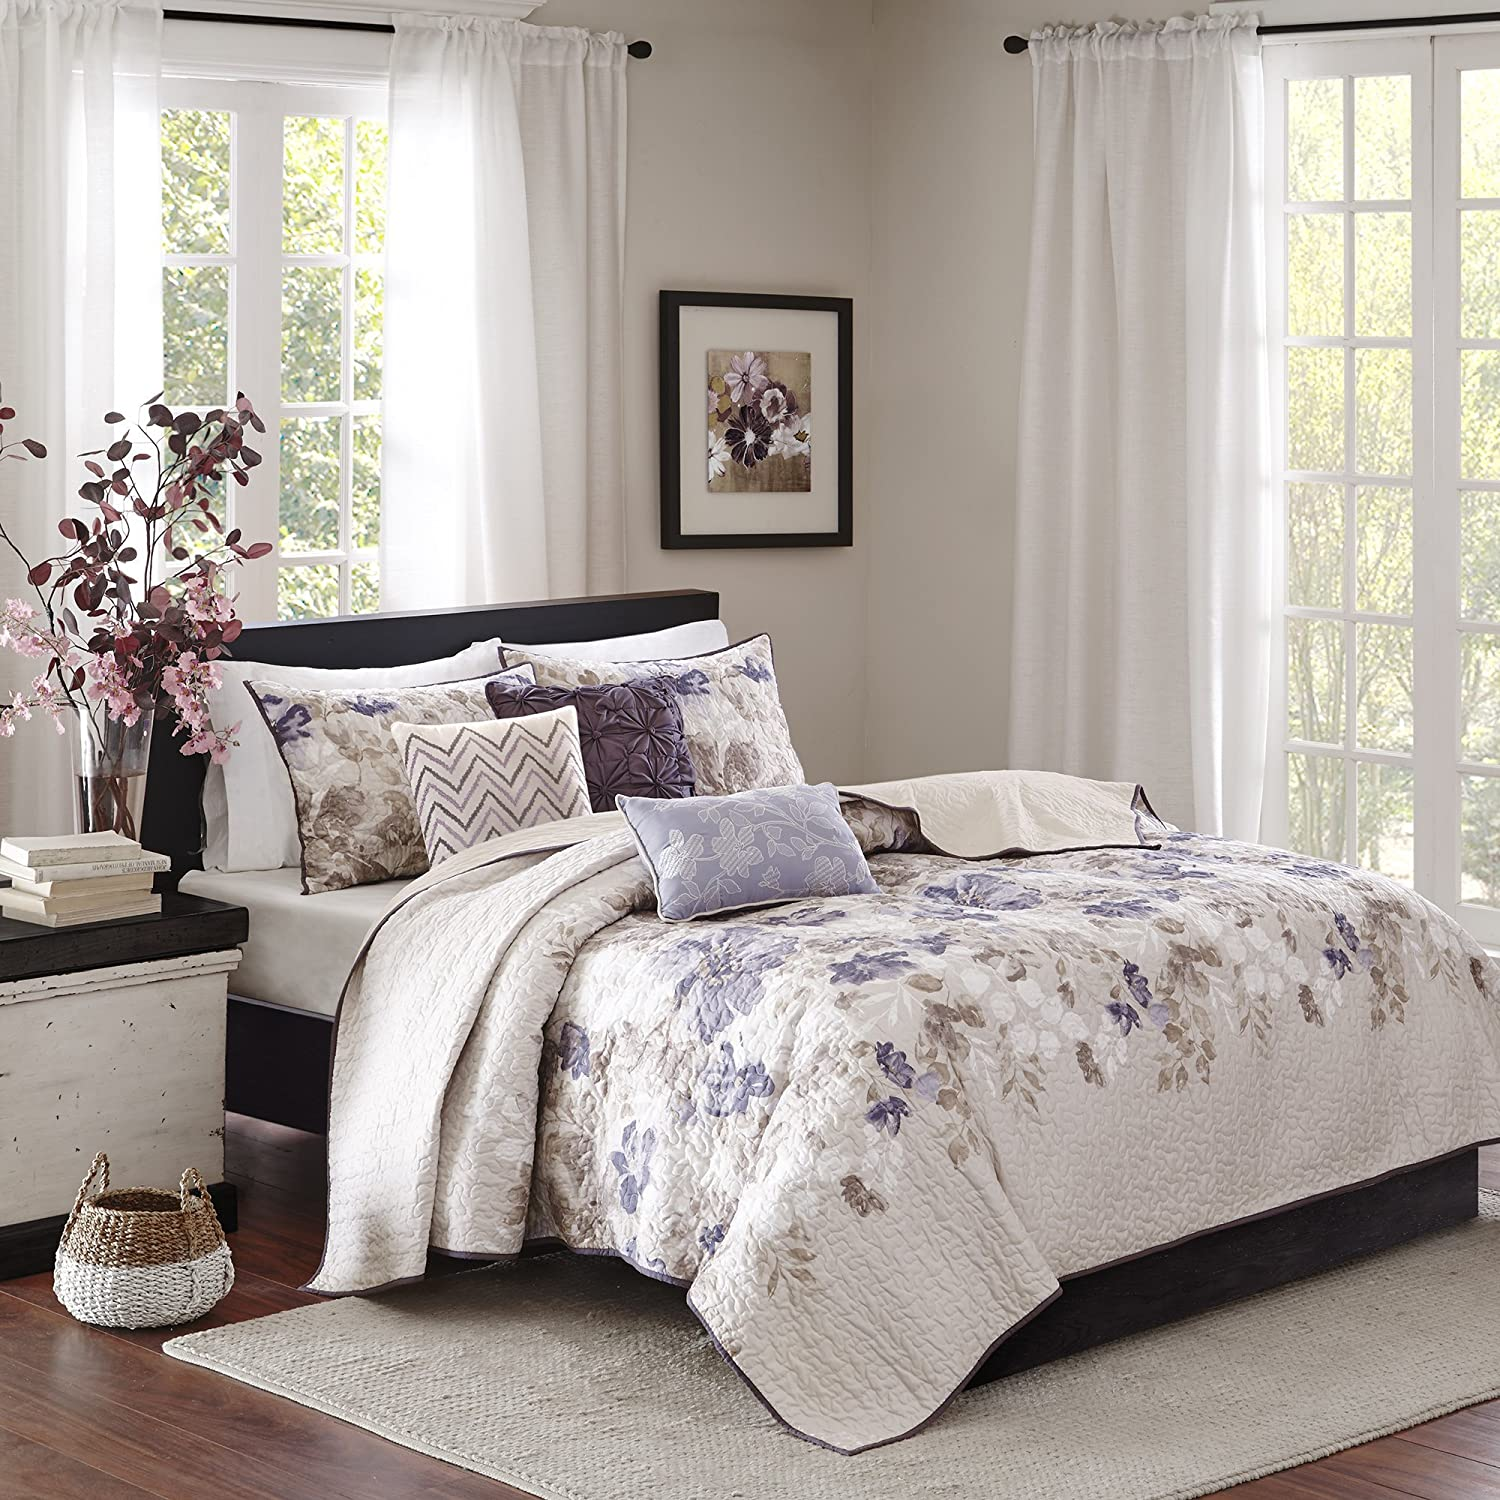 Madison Park Luna Full/Queen Size Quilt Bedding Set - Blue, Plum, Floral, Leaf – 6 Piece Bedding Quilt Coverlets – Ultra Soft Microfiber with Cotton Filling Bed Quilts Quilted Coverlet JLA Home MP13-2120